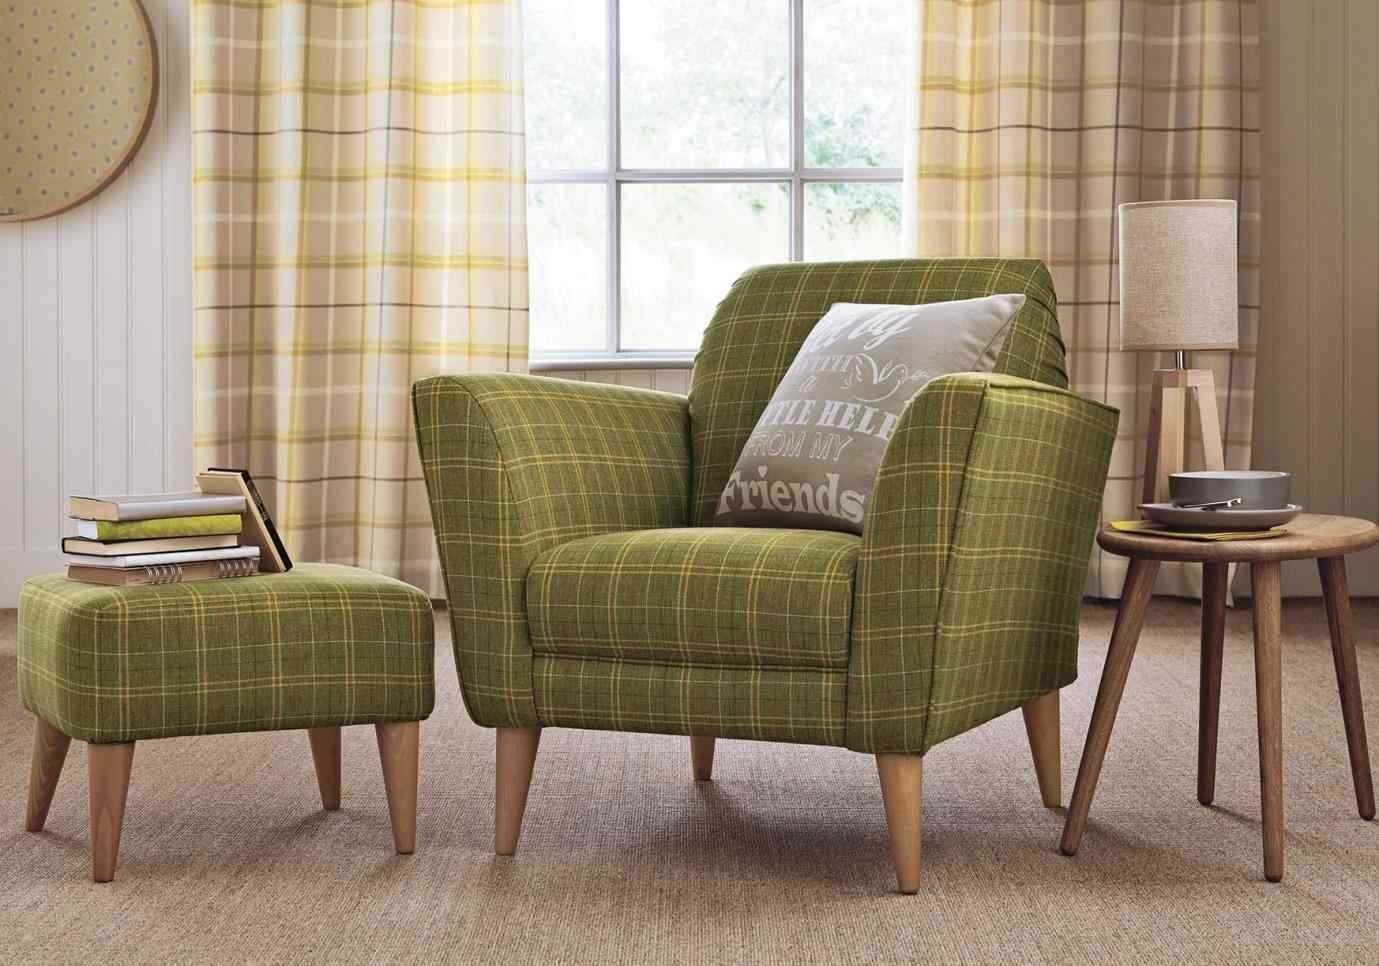 Most Comfortable Living Roomfurniture Most fortable Living Room Chair Inspirations and Most